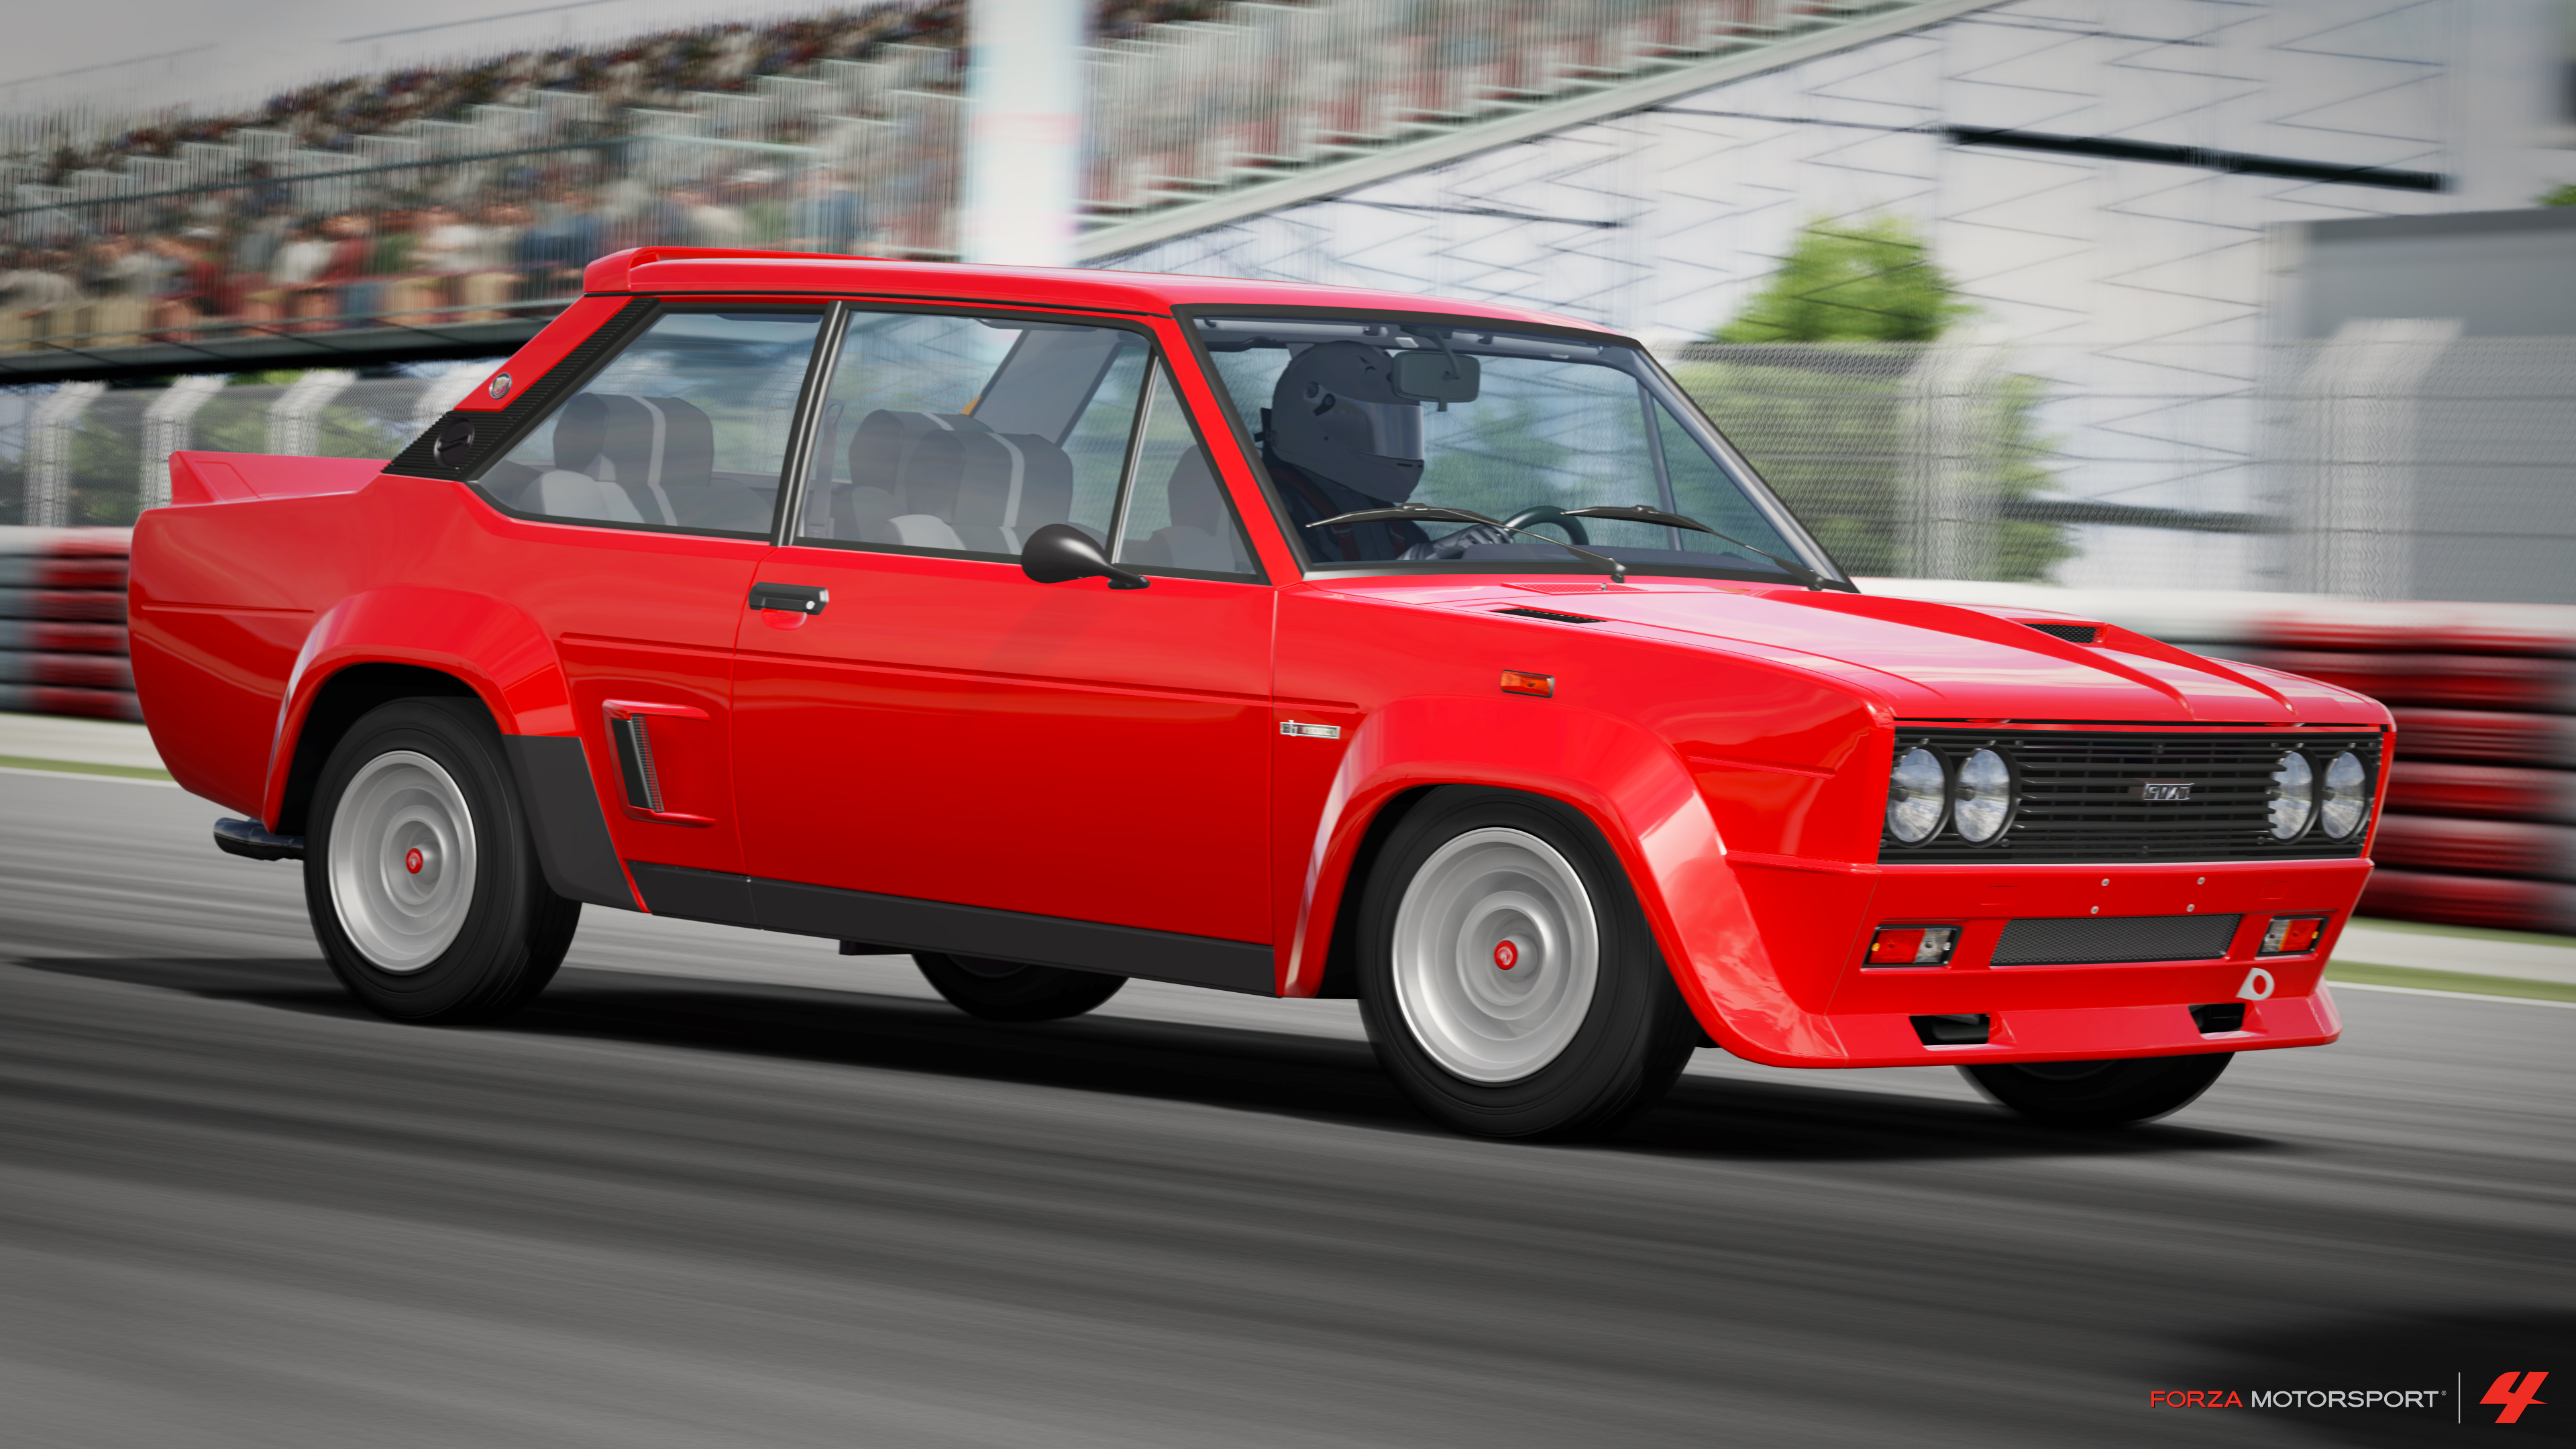 Image Gallery Fiat 131 Abarth